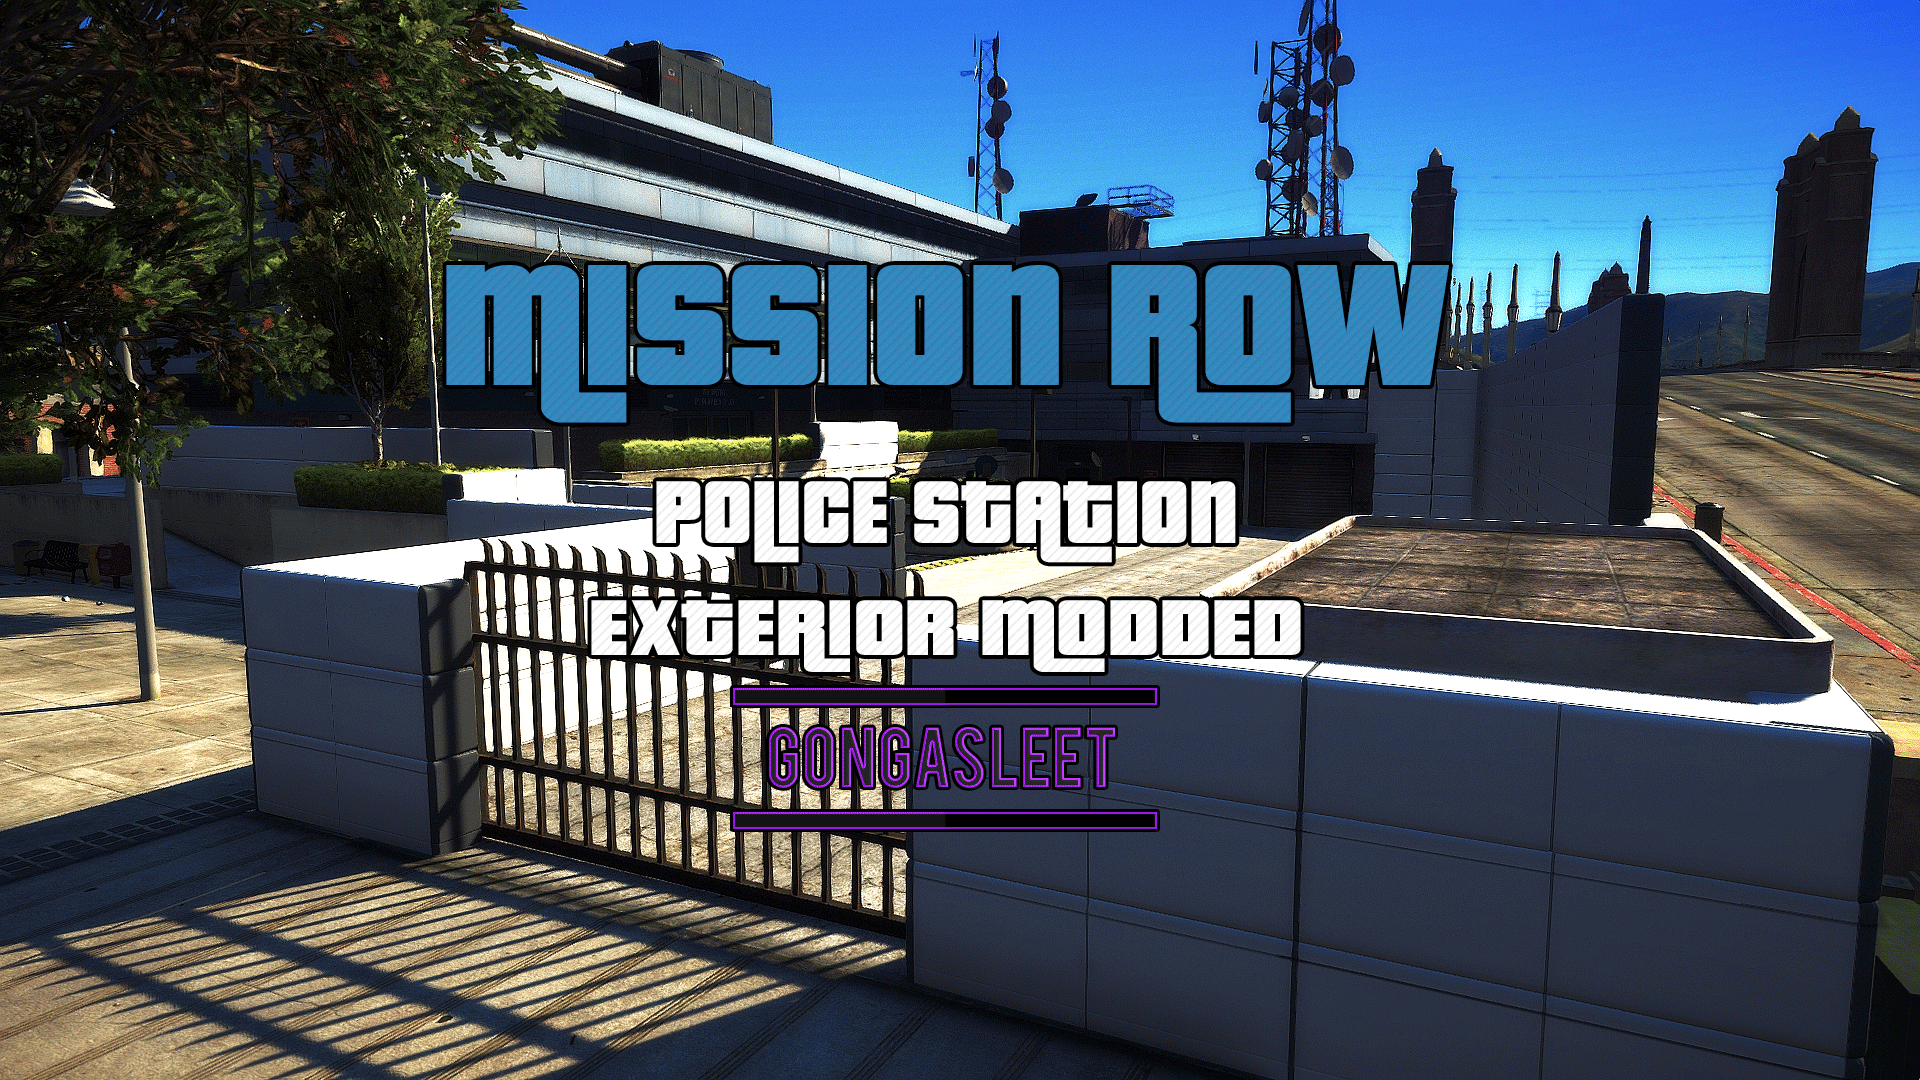 Police Station - Mission Row Exterior Modded [FiveM | SP